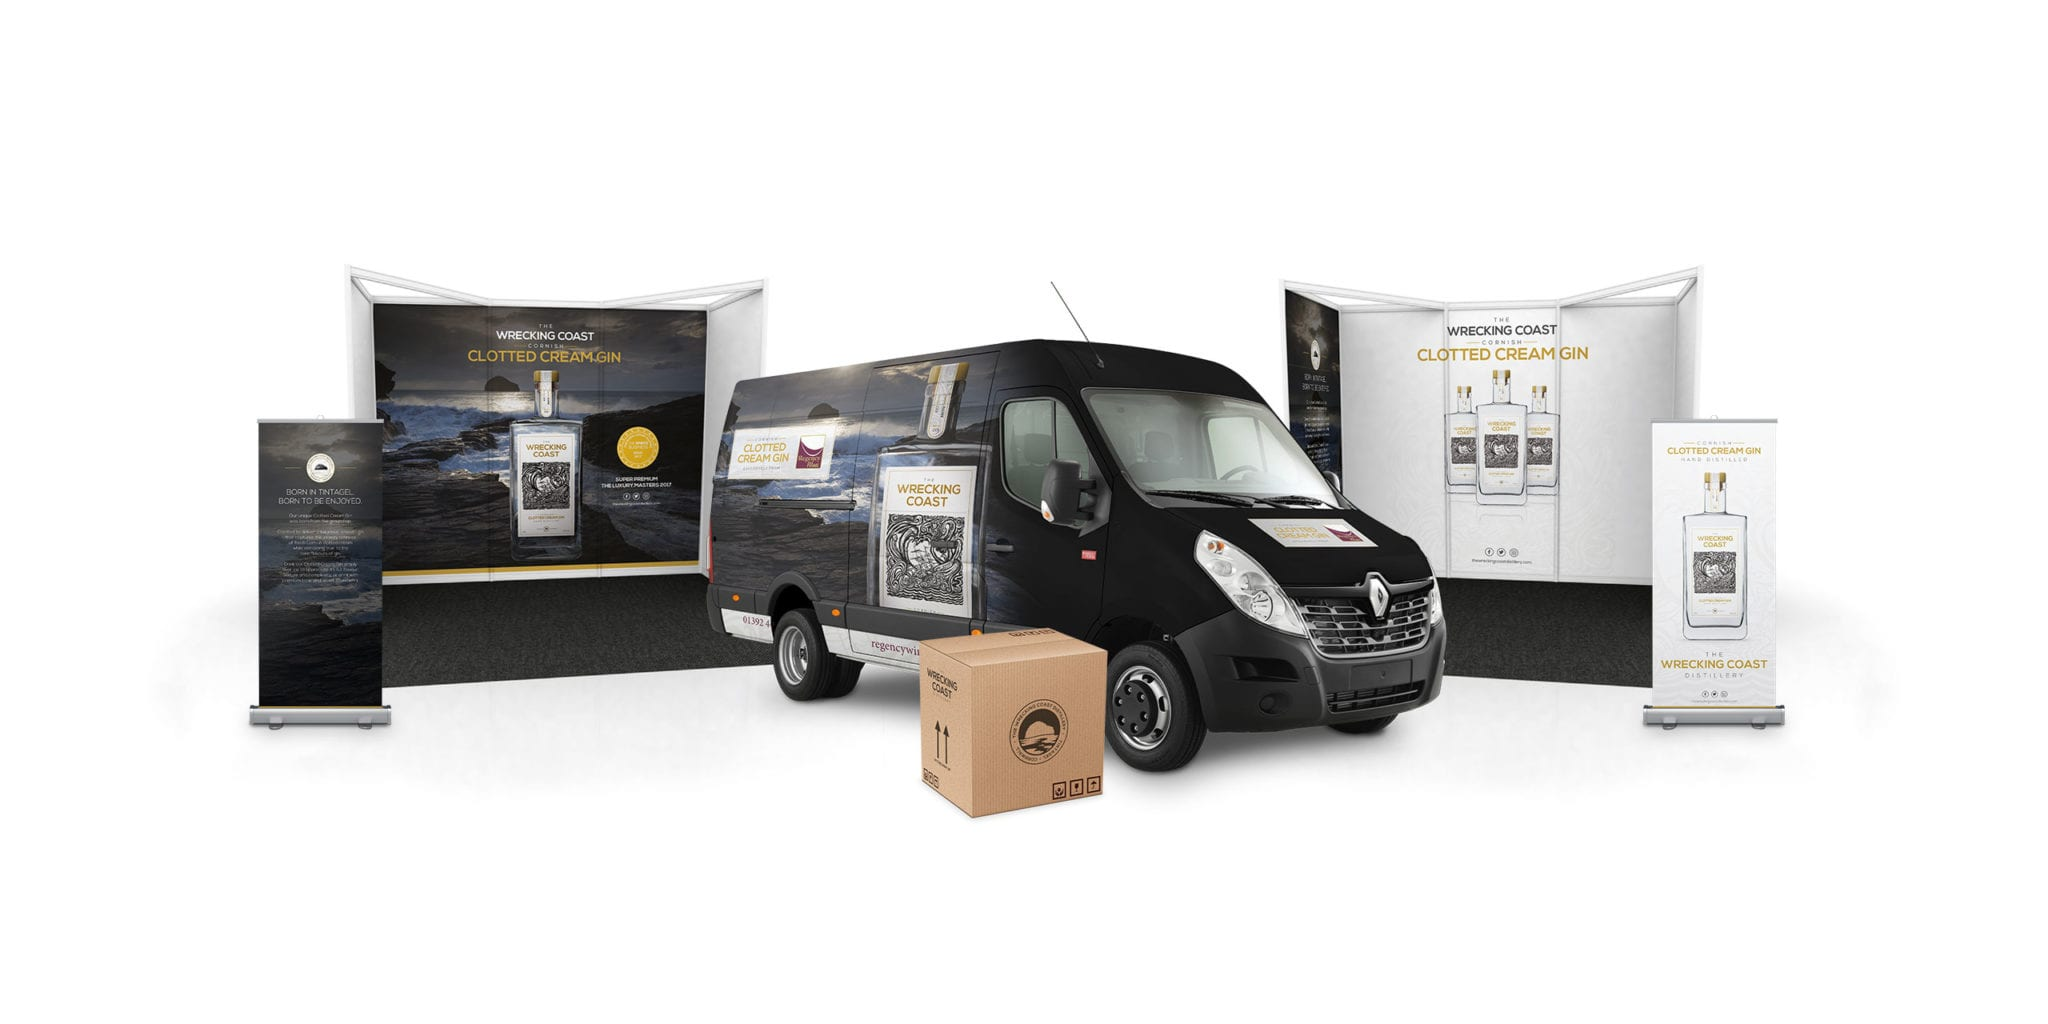 Two branded exhibition stands with roll-up banners, branded van livery and cardboard packaging design.